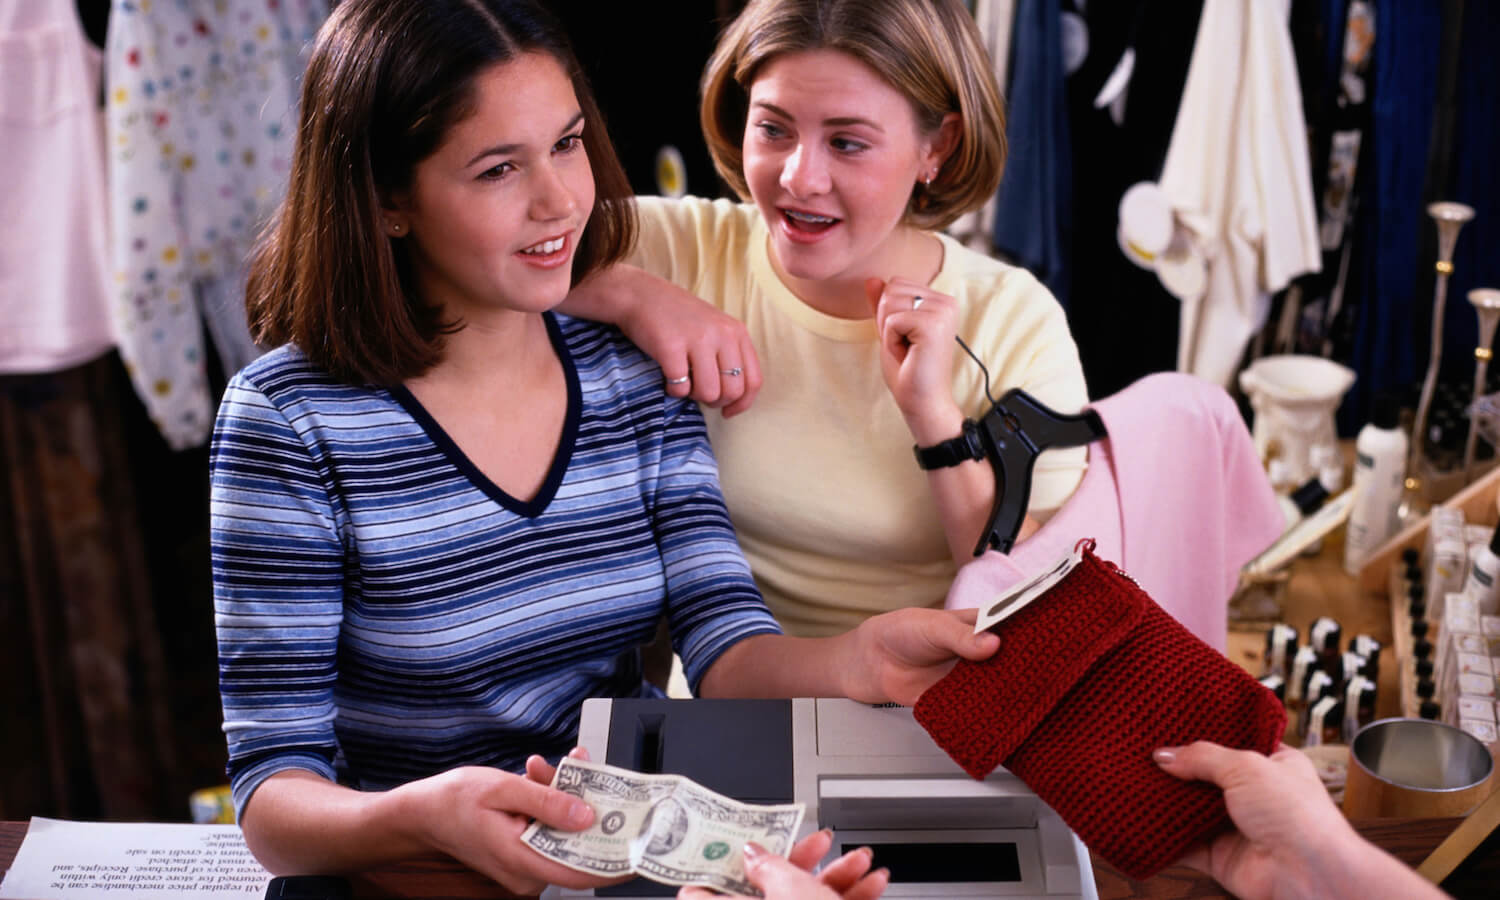 Teen girls (14-15 years old) buying clothing